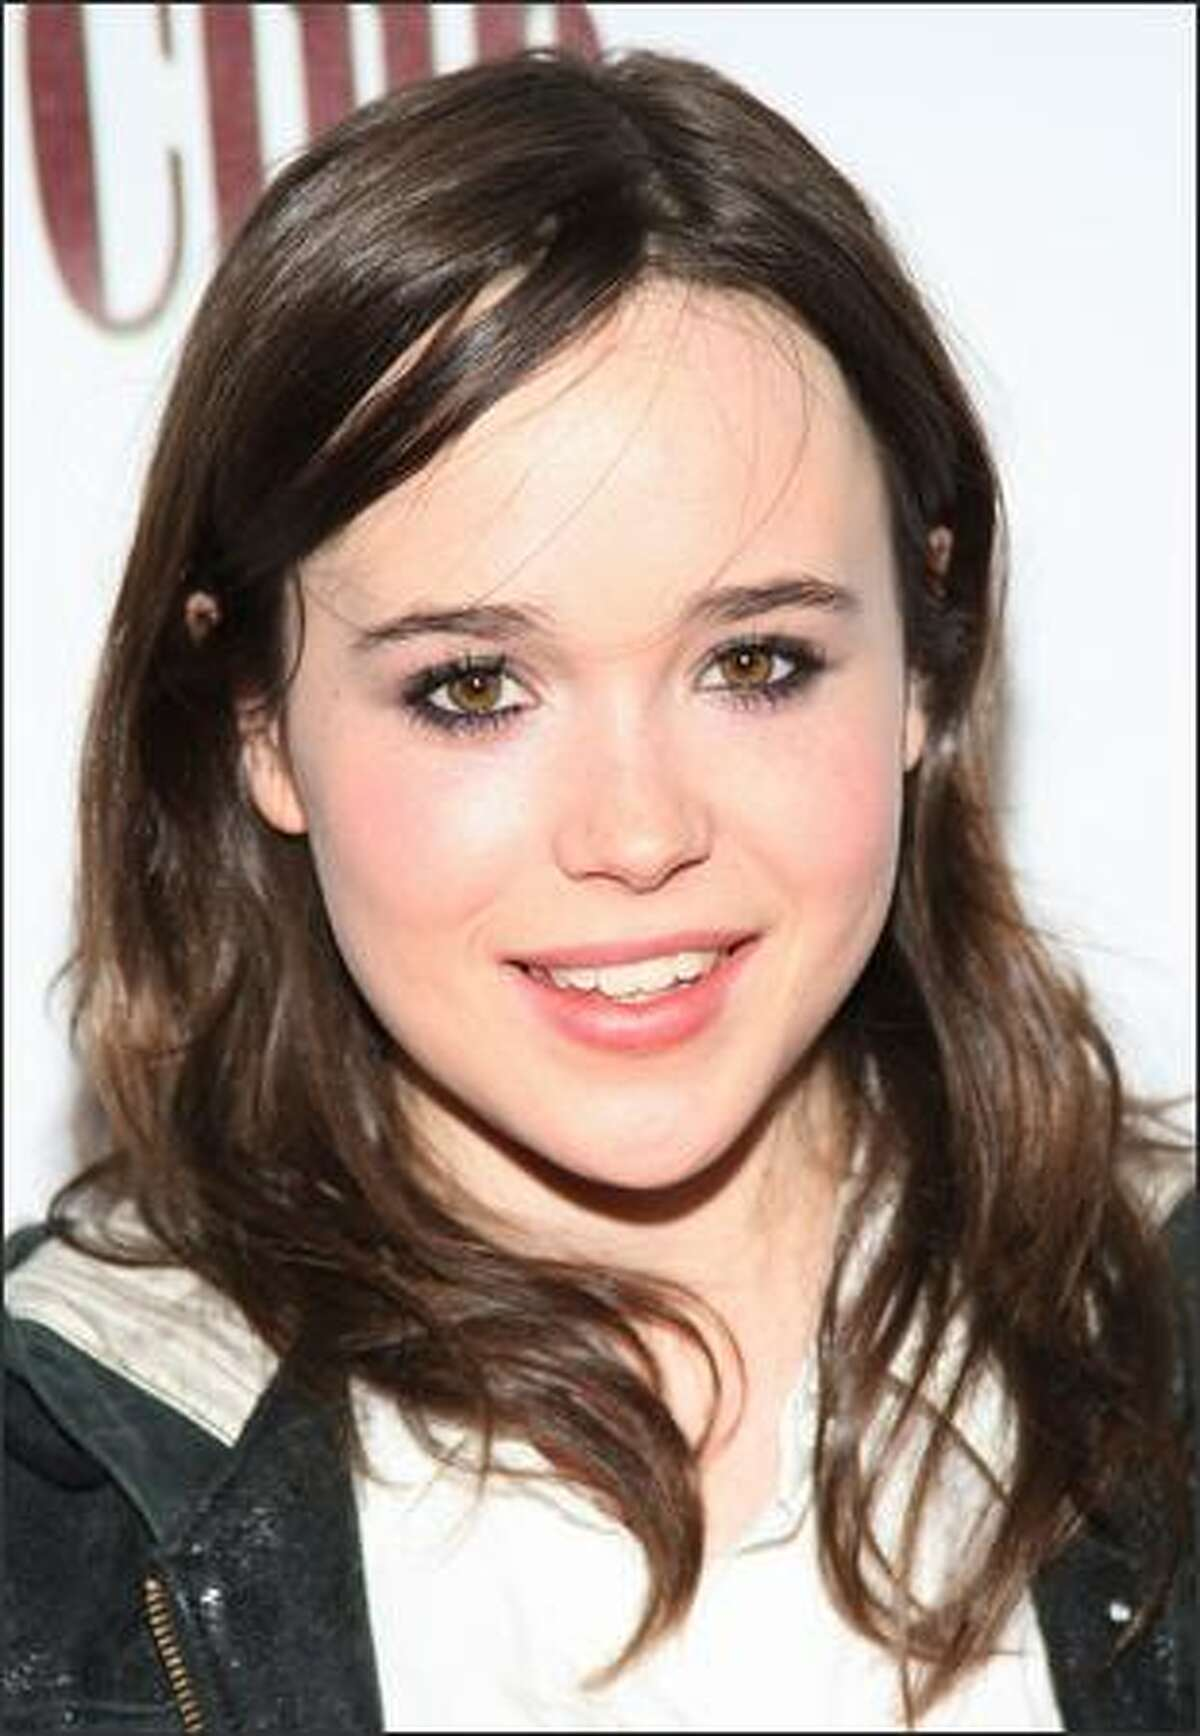 Actress Ellen Page attends the Fox Searchlight Pictures' Oscar & Independent Spirit Award Party at the STK LA Restaurant.